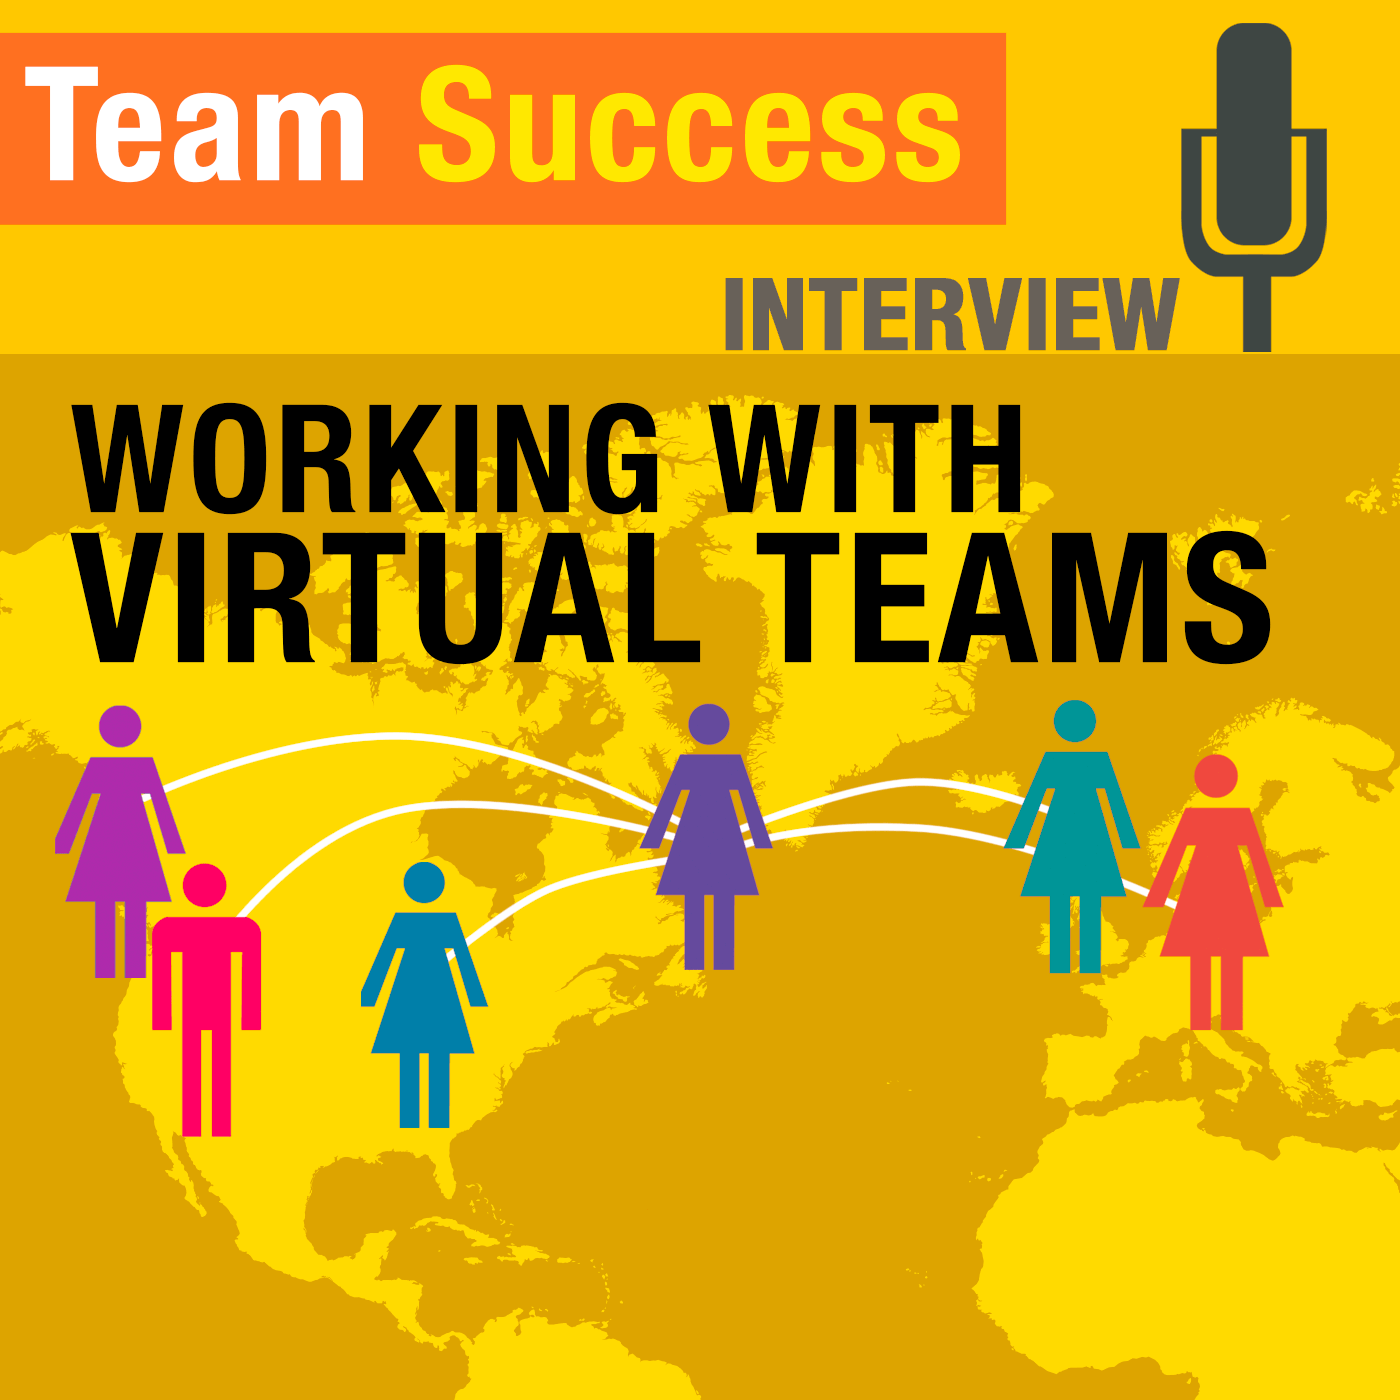 teamsuccess_workingwithvirtualteams-1